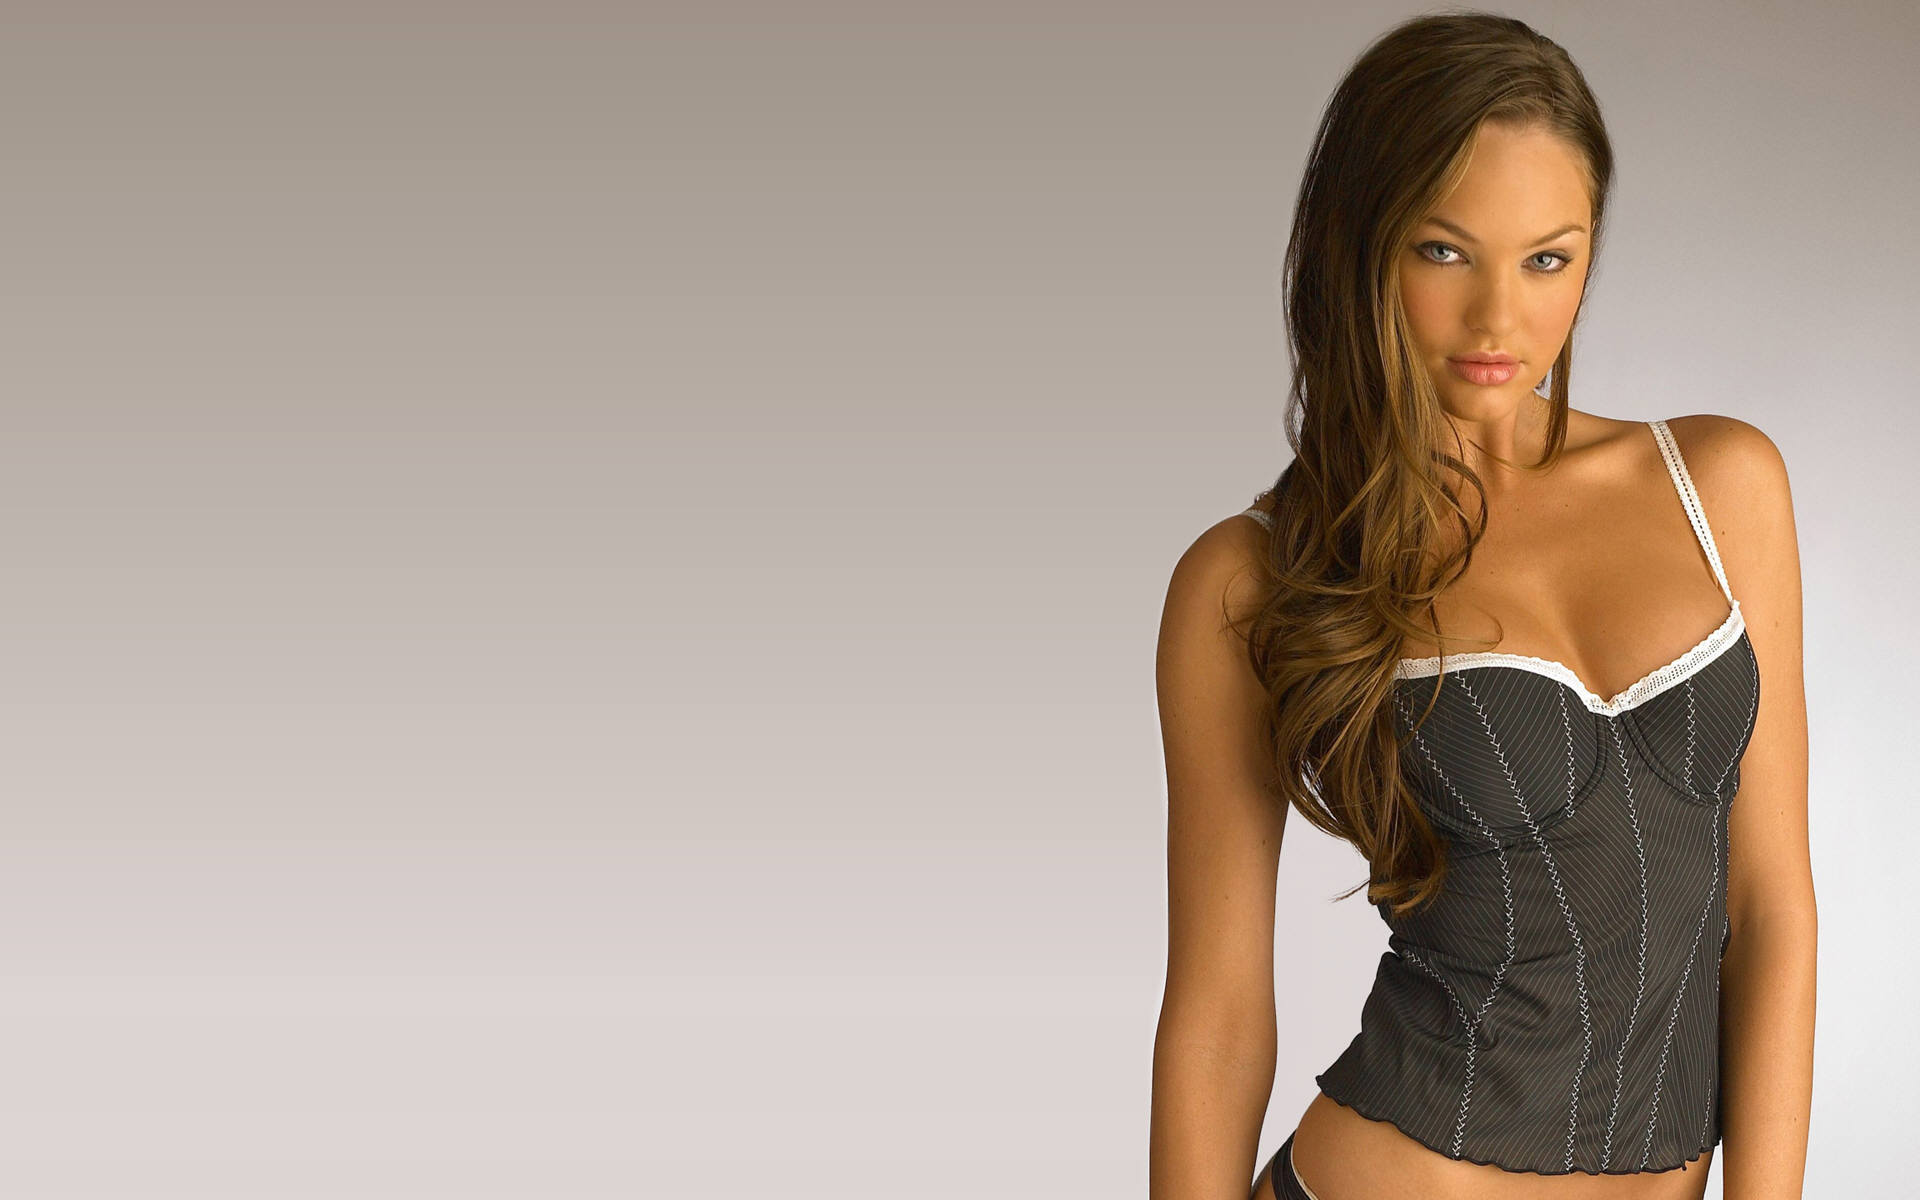 brunettes woman models candice HD Wallpaper